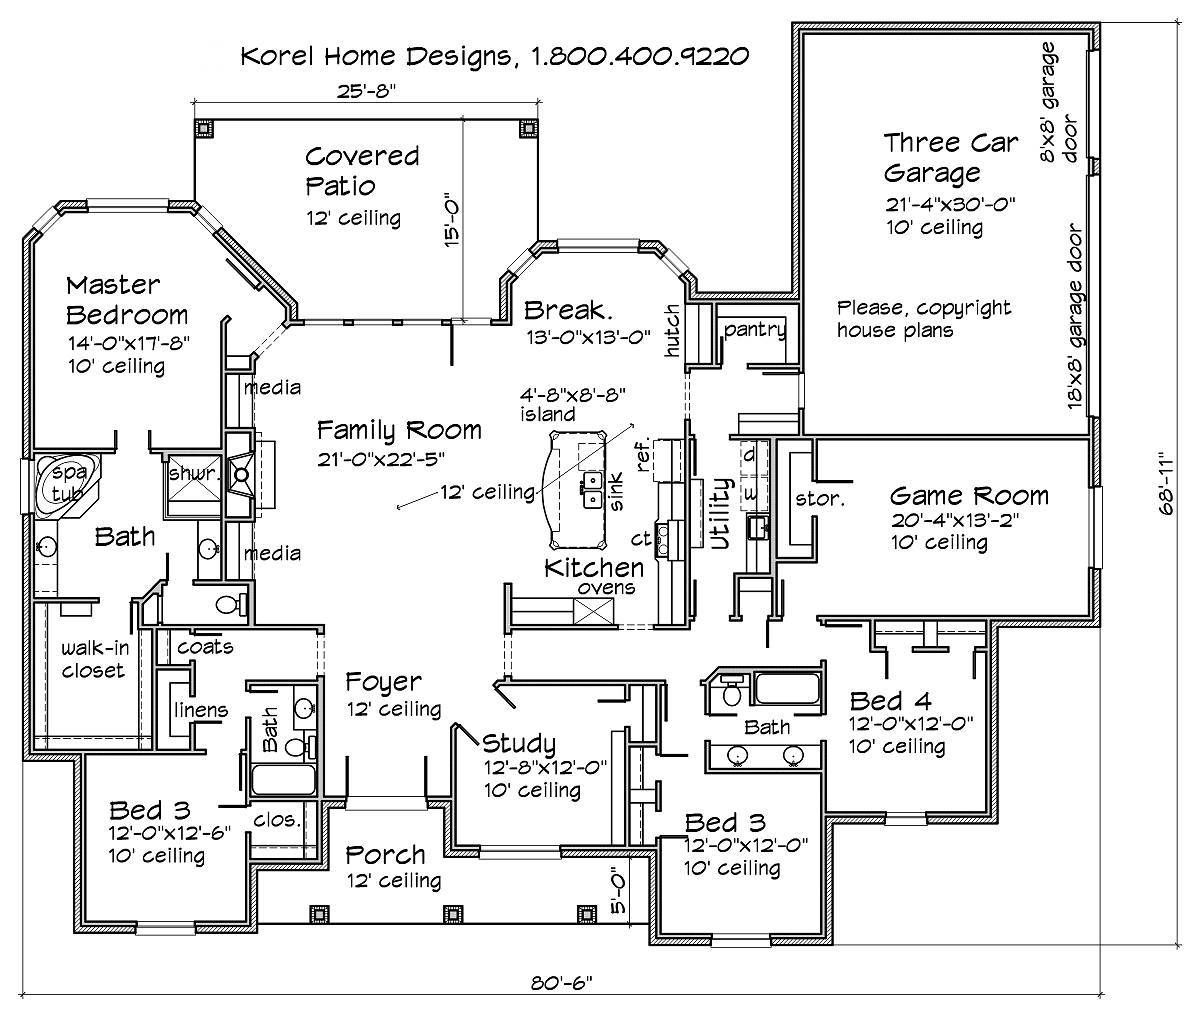 House Plans By Korel Home Designs Bedroom To Make Into Needlepoint Room  Guest Bedrooms Study